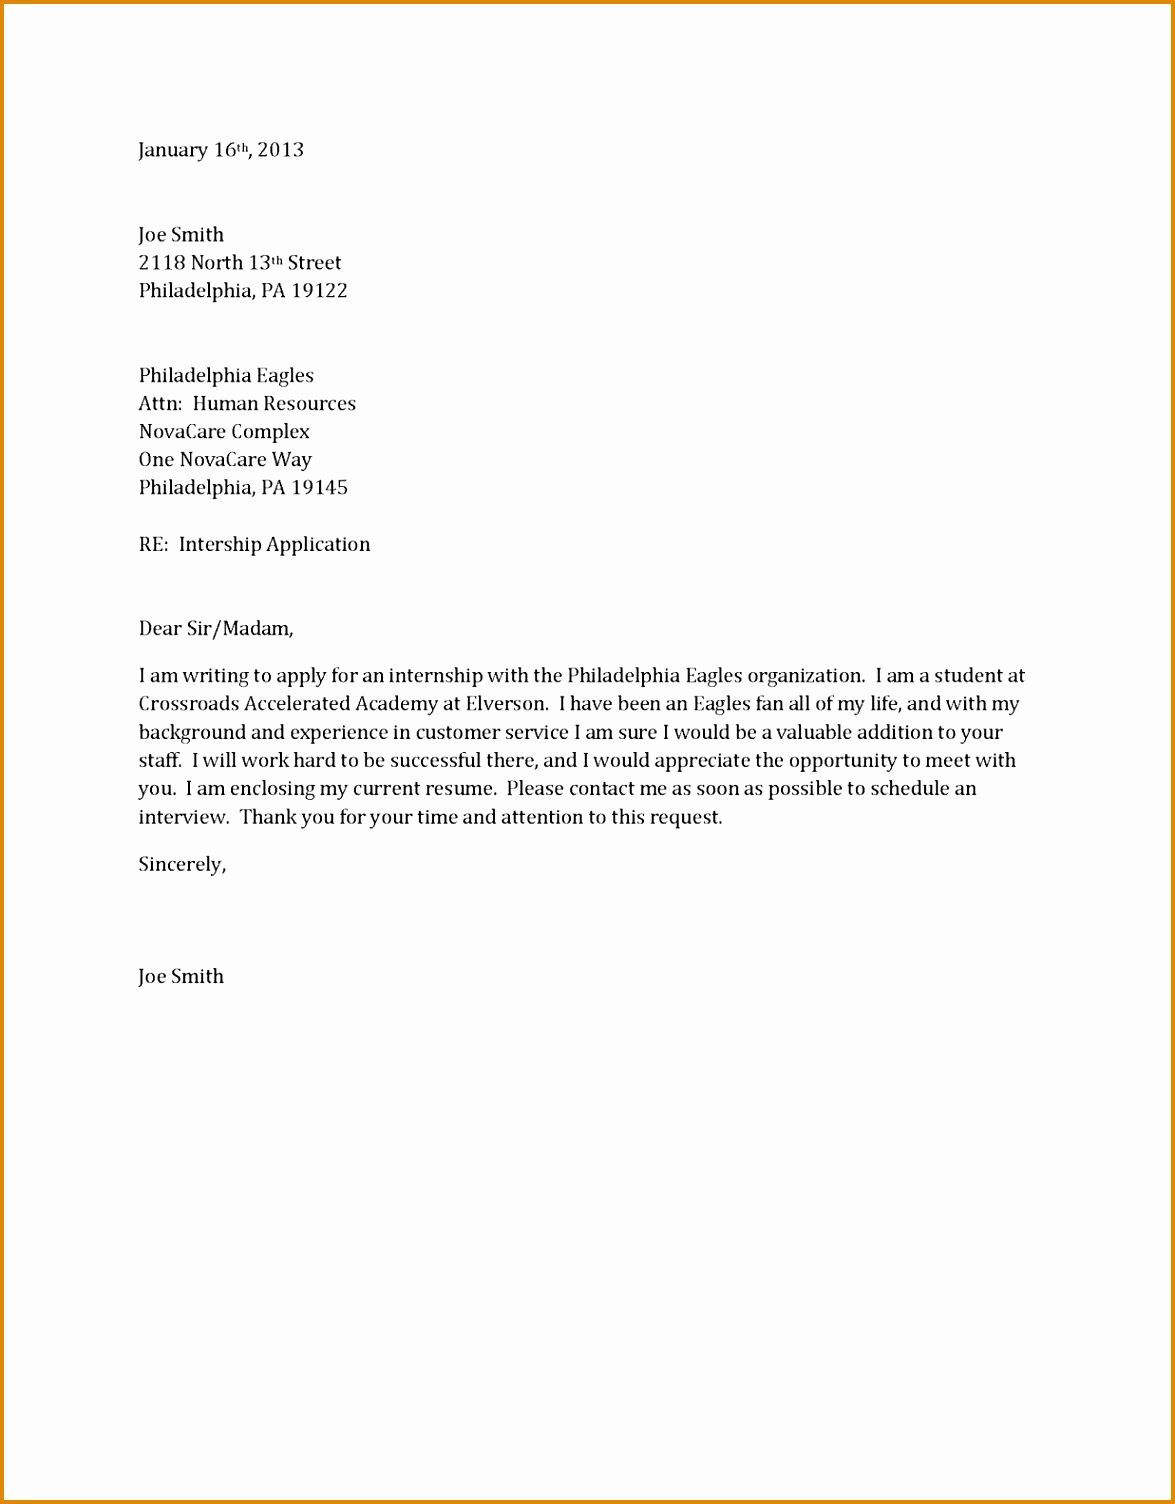 Best Job Cover Letter Awesome Sample Cover Letter for Job Application Freshers Doc Good